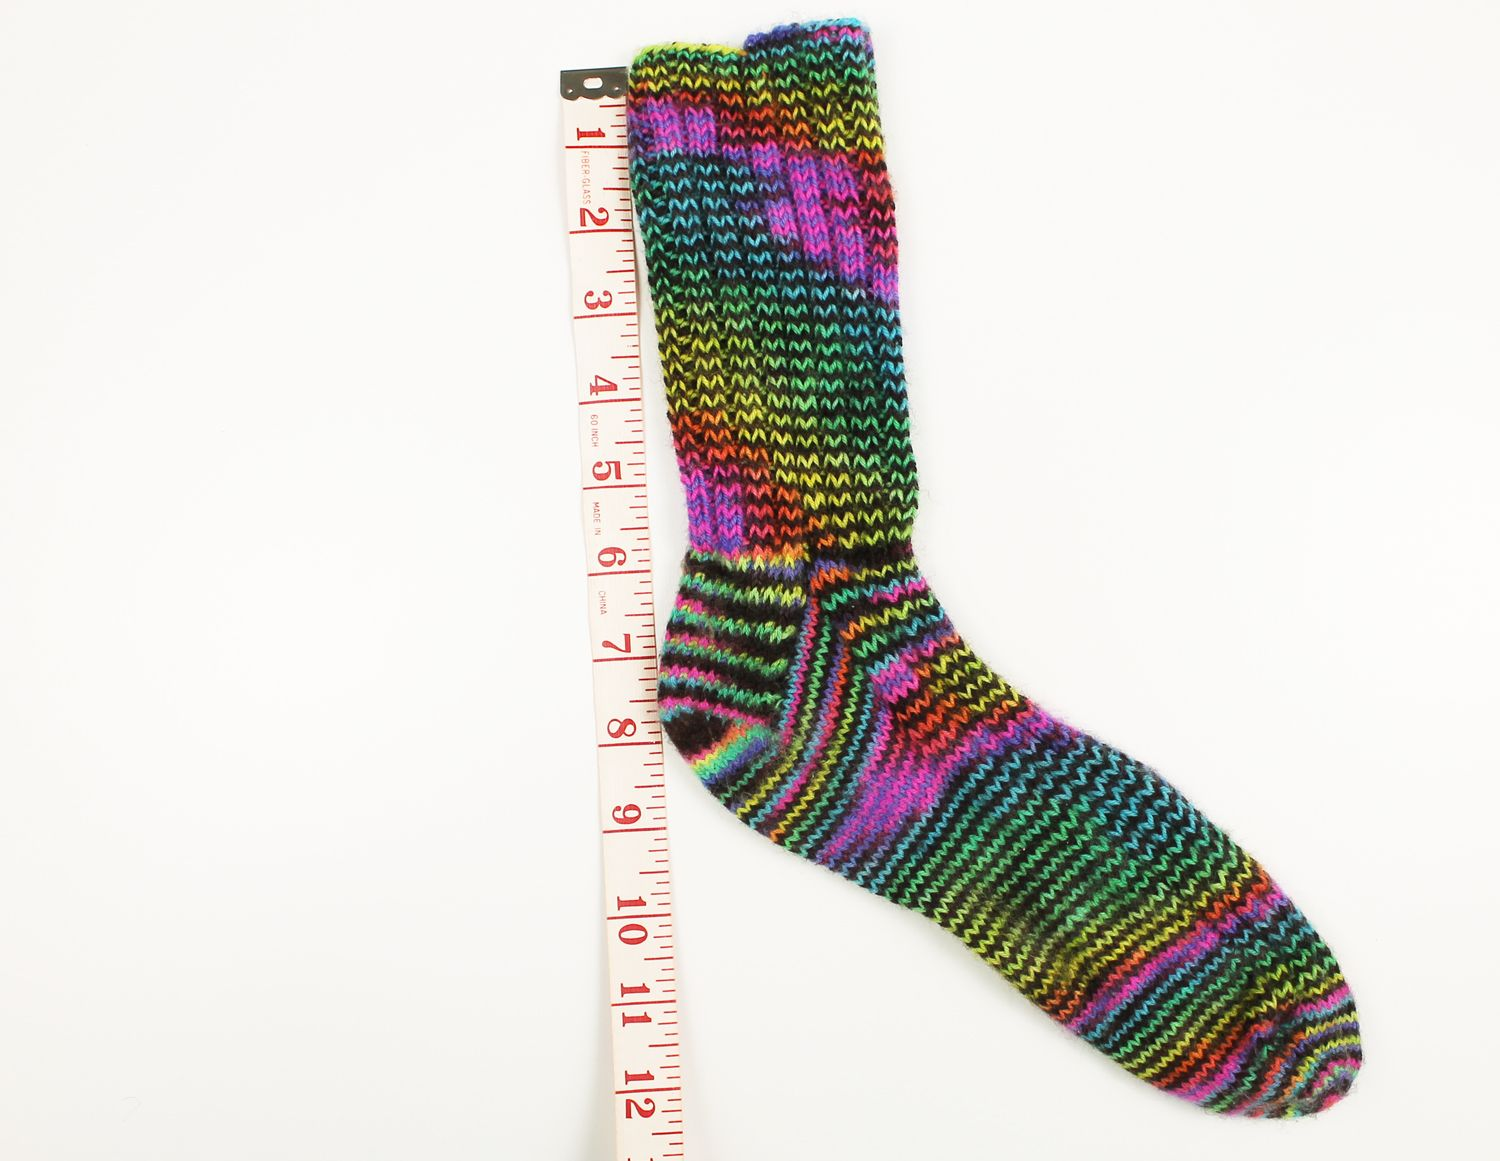 How to Measure Your Foot for Knitting Socks